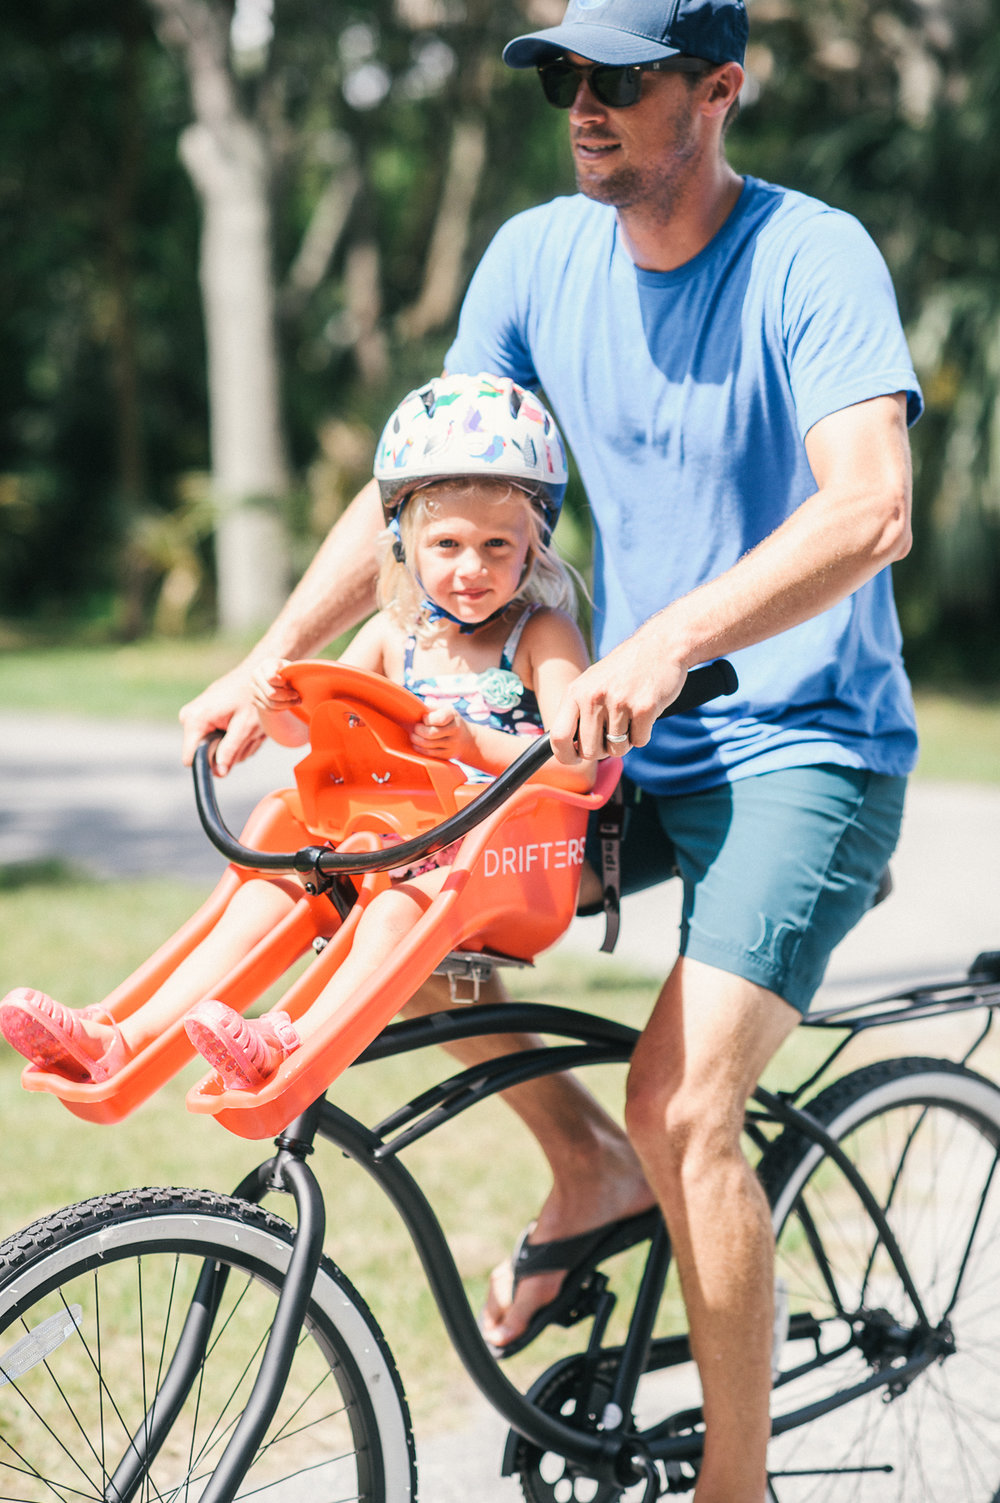 Kids Bike Seat   - Comes with helmet!$12 Daily$28 Weekly